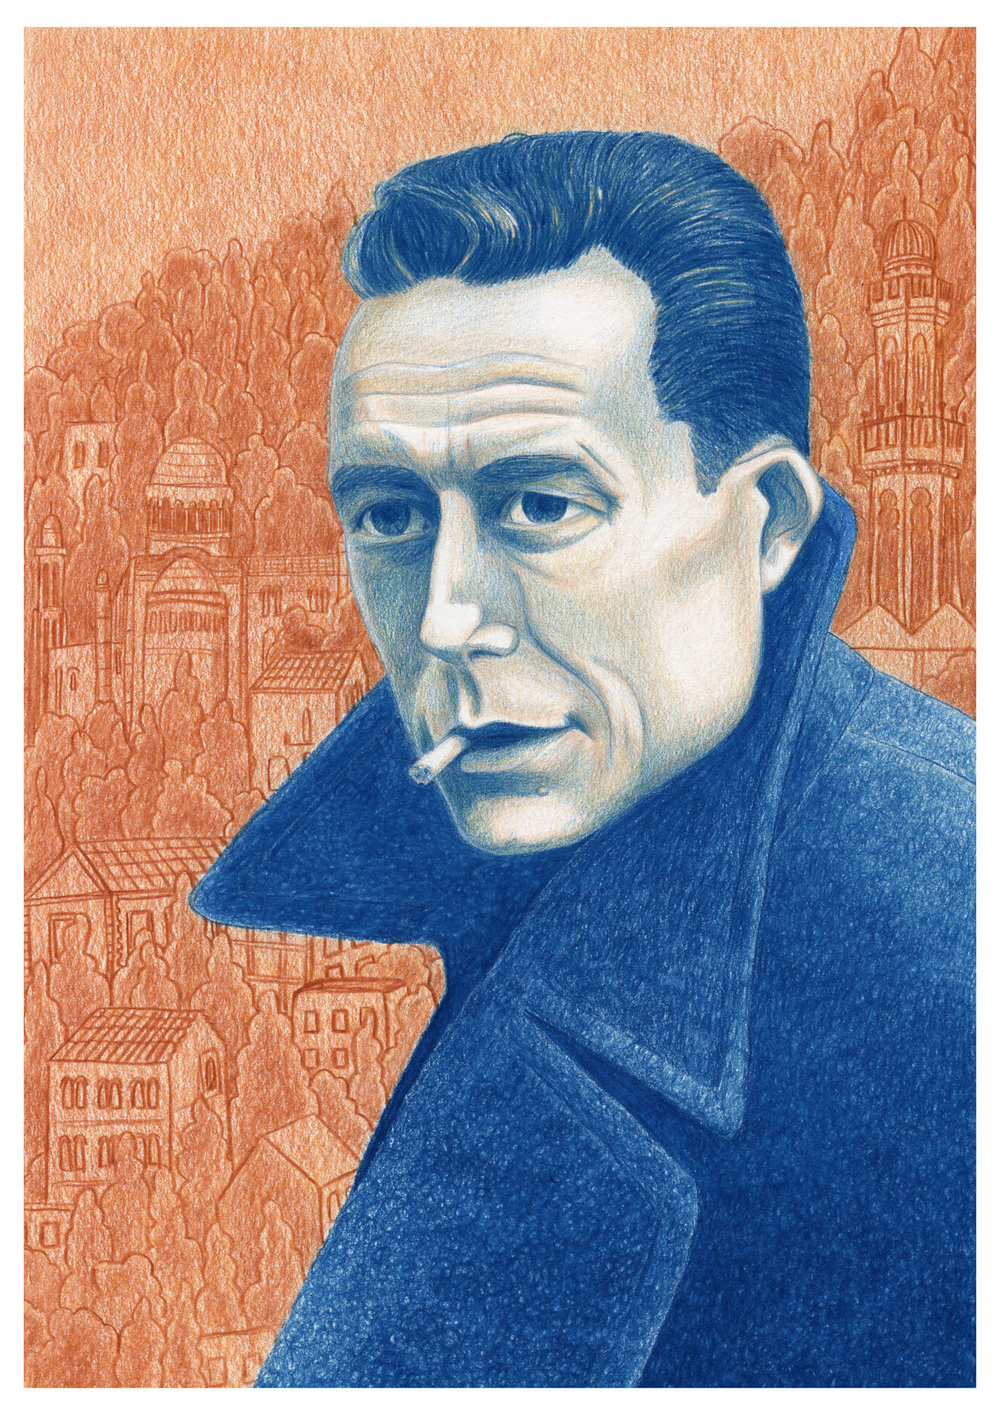 My finished illustration of Albert Camus